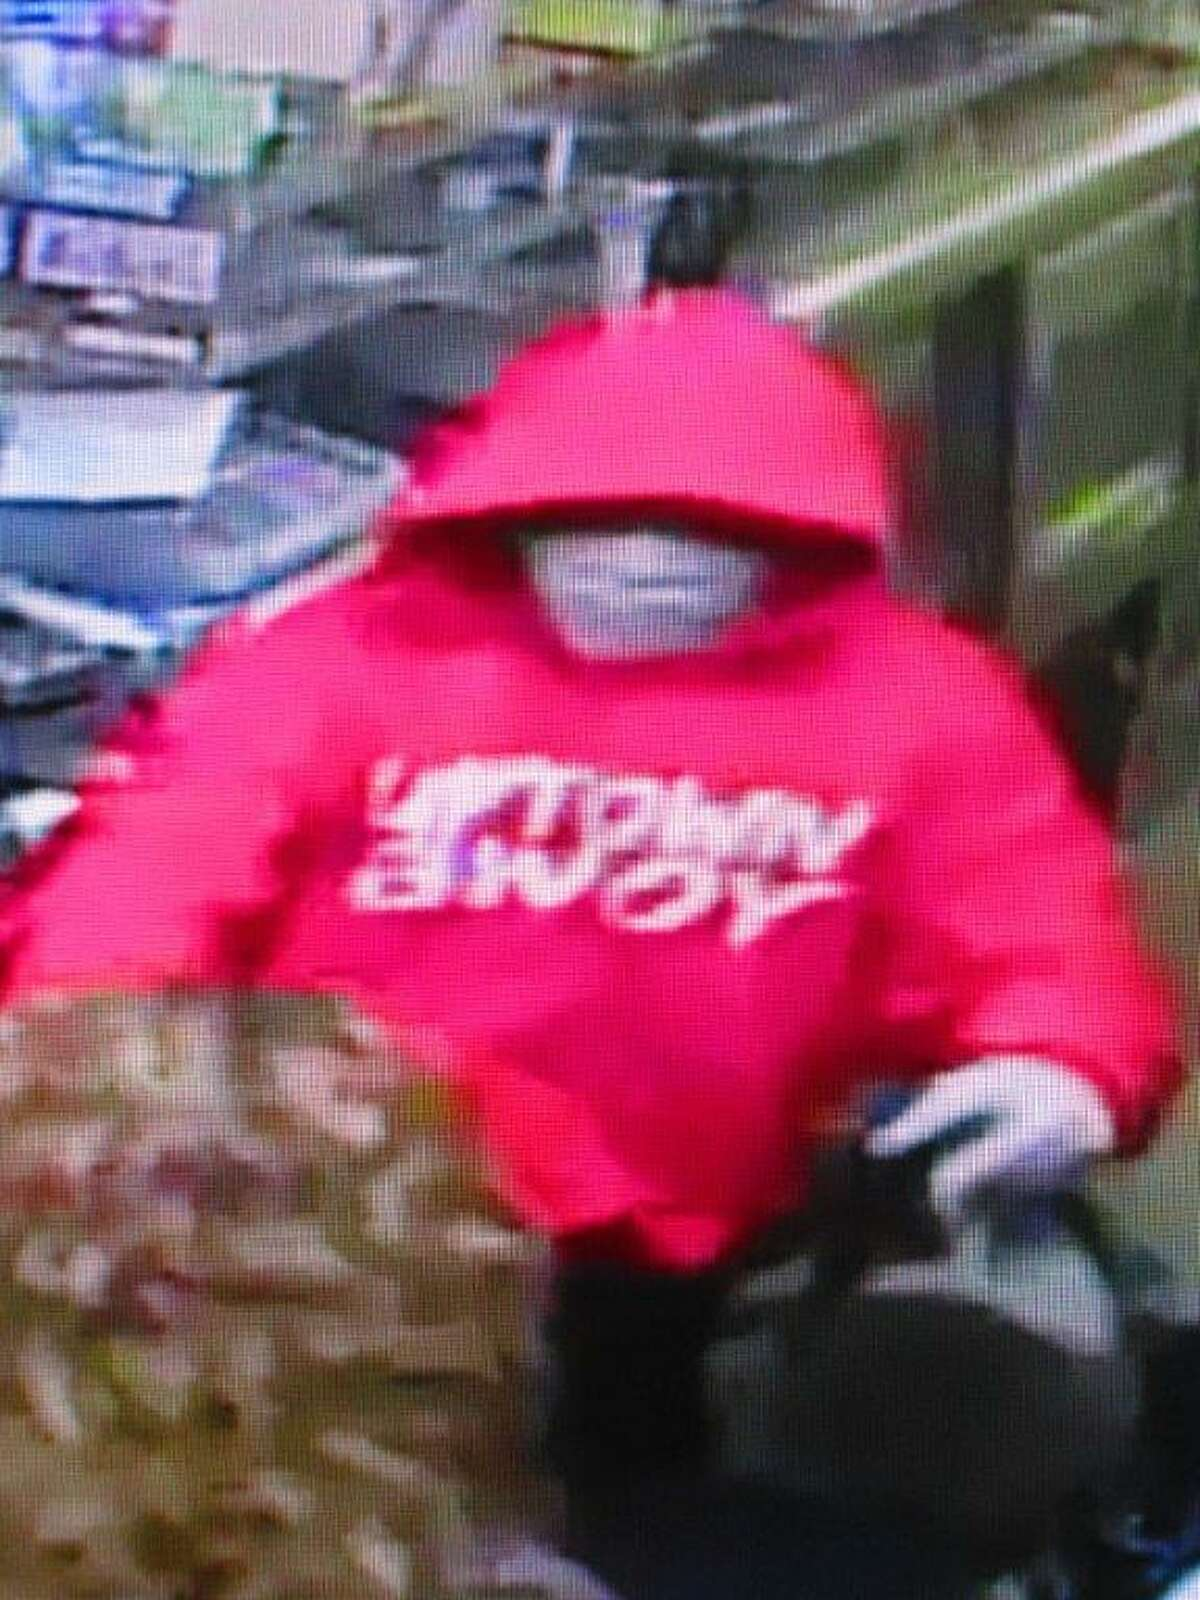 Police are investigating a Wednesday morning robbery at a grocery store on Soundview Avenue.